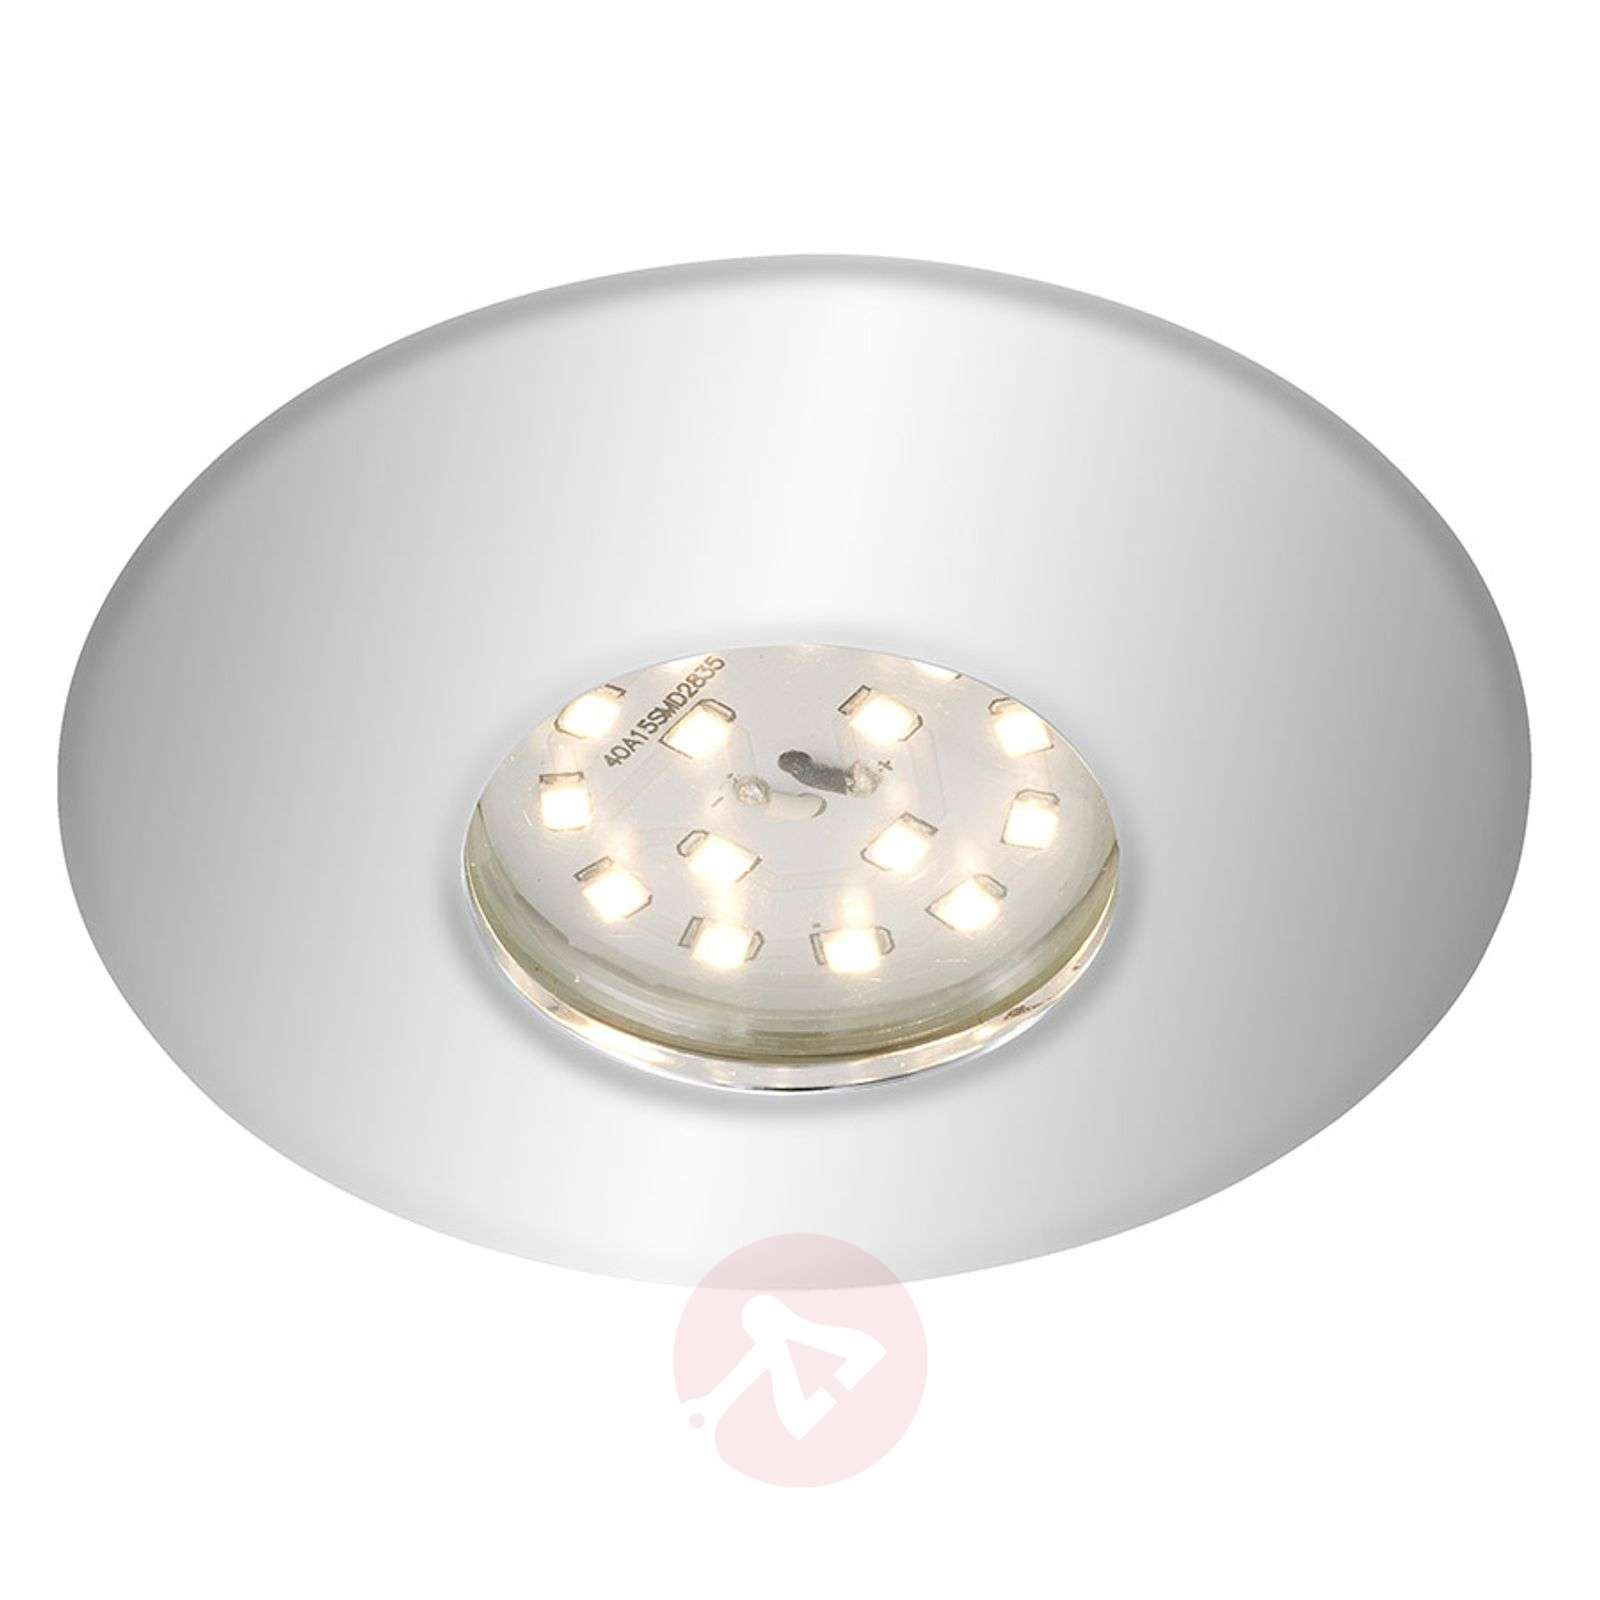 Spot encastré LED chromé Shower, IP65-1510317-01